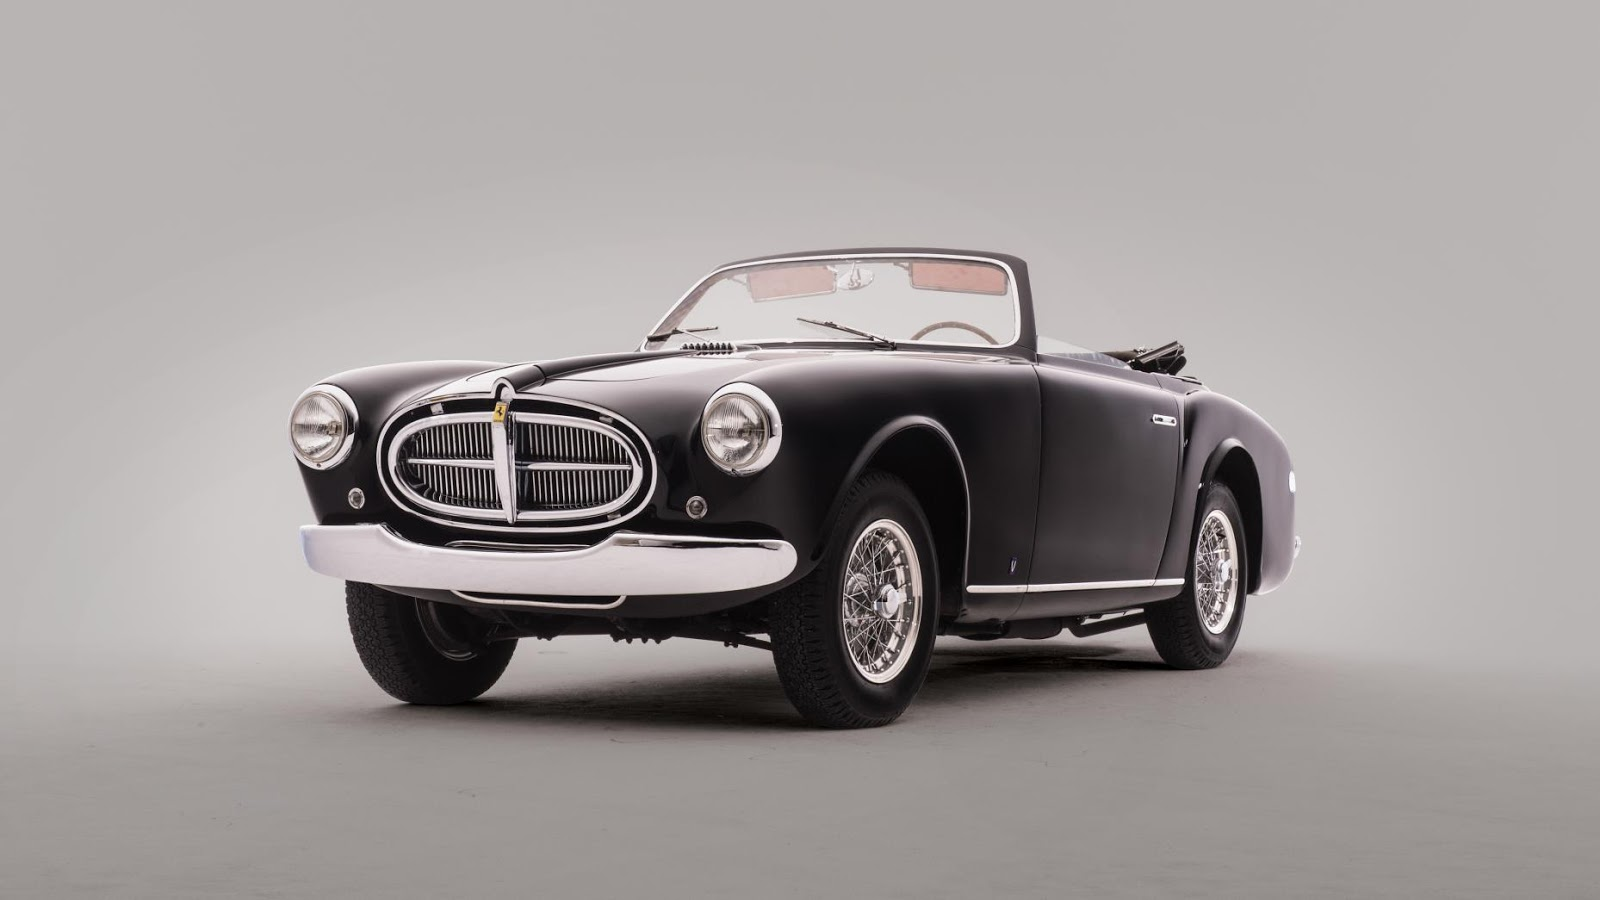 1952 Ferrari 212 of Inter Cabriolet by Vignale - £ 926k